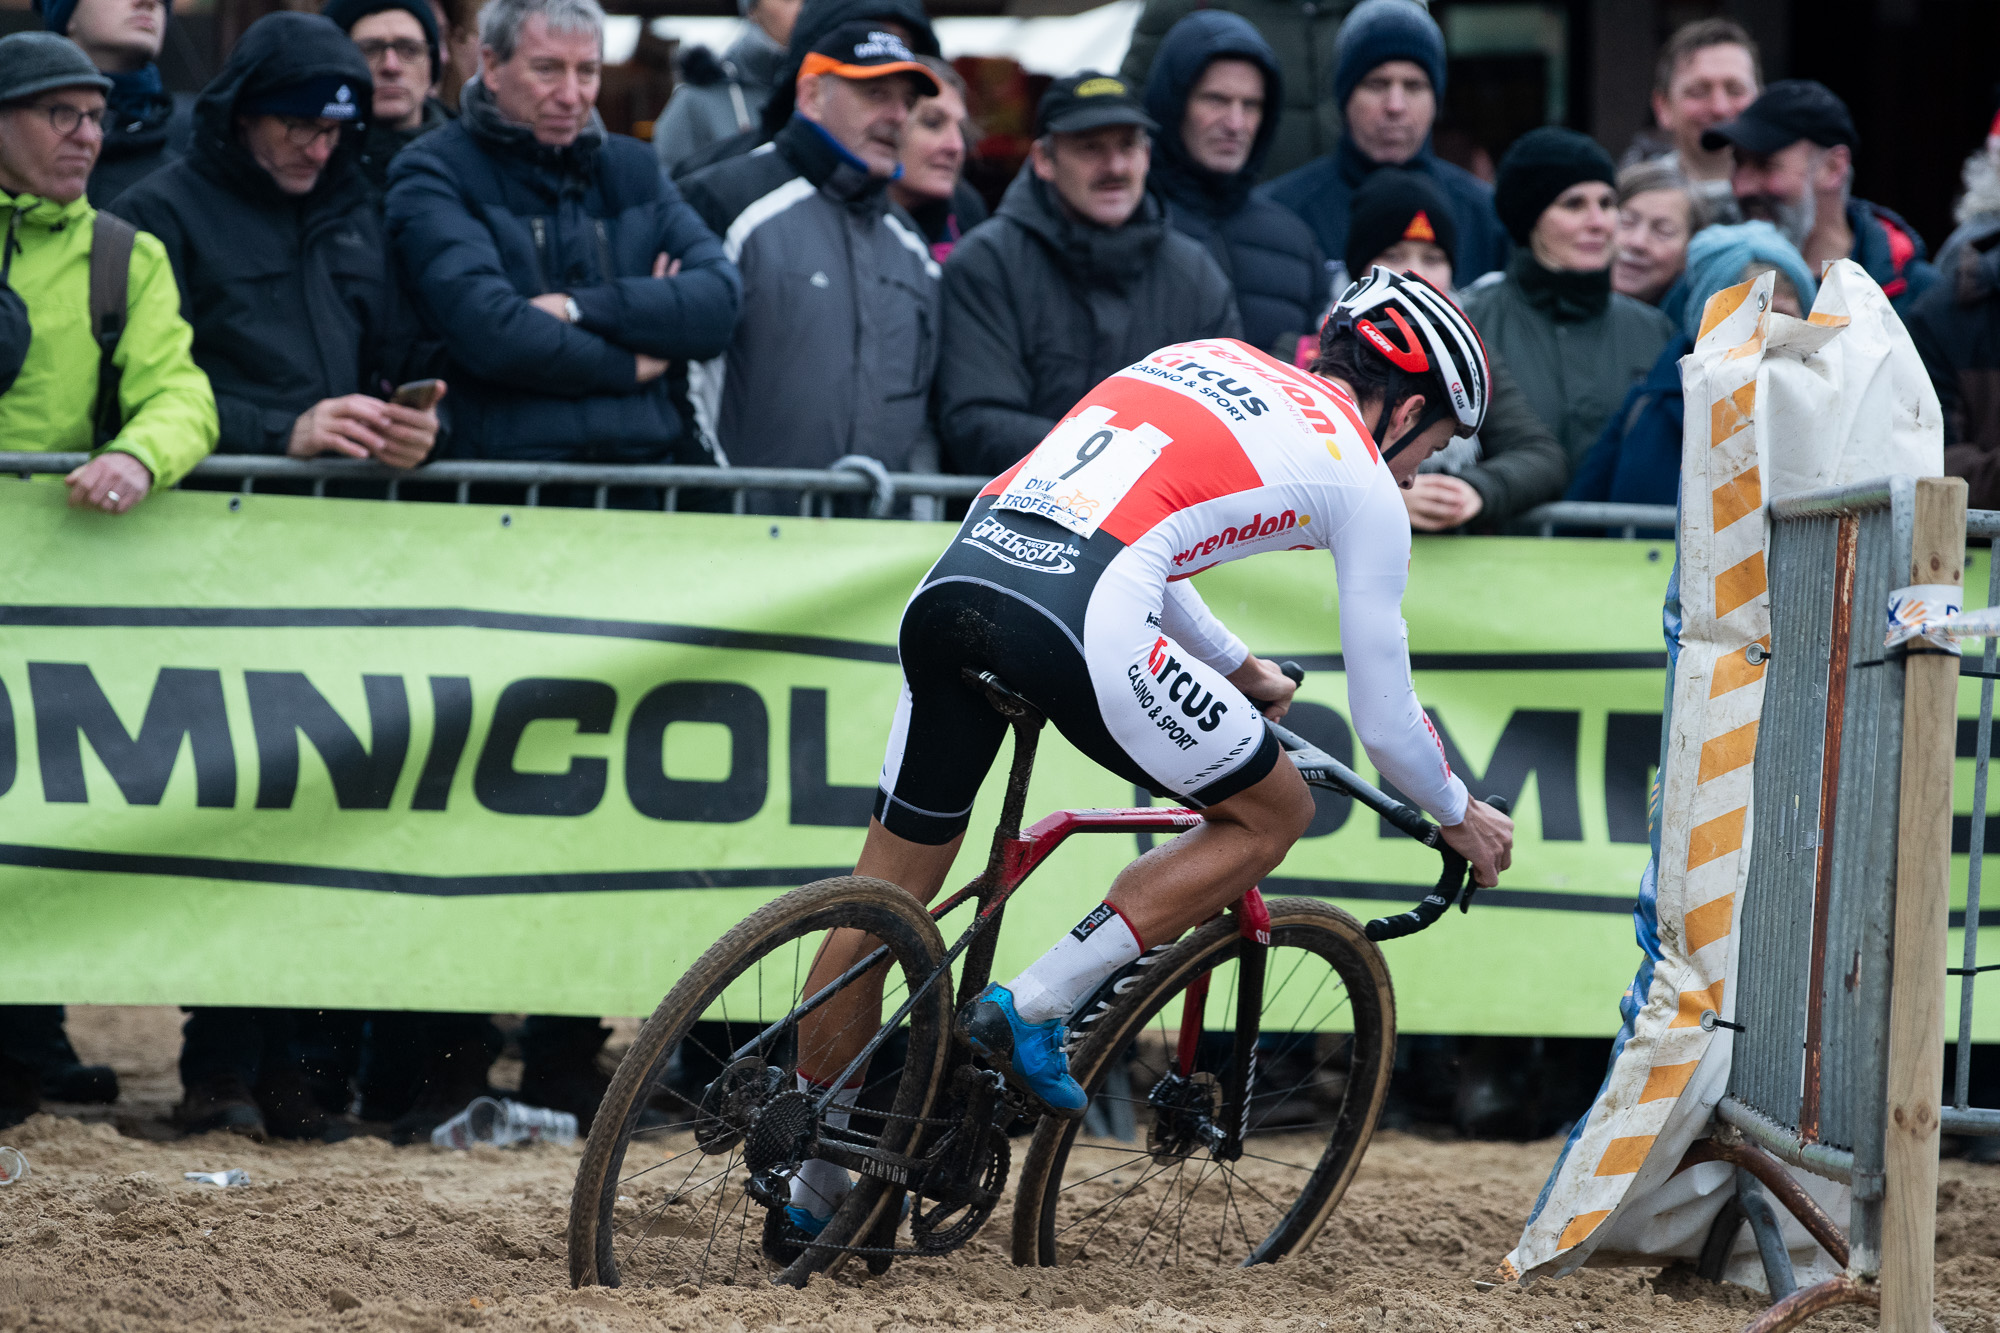 Tom Meeusen cornering in one of the deep ruts that characterize the Krawatencross course.